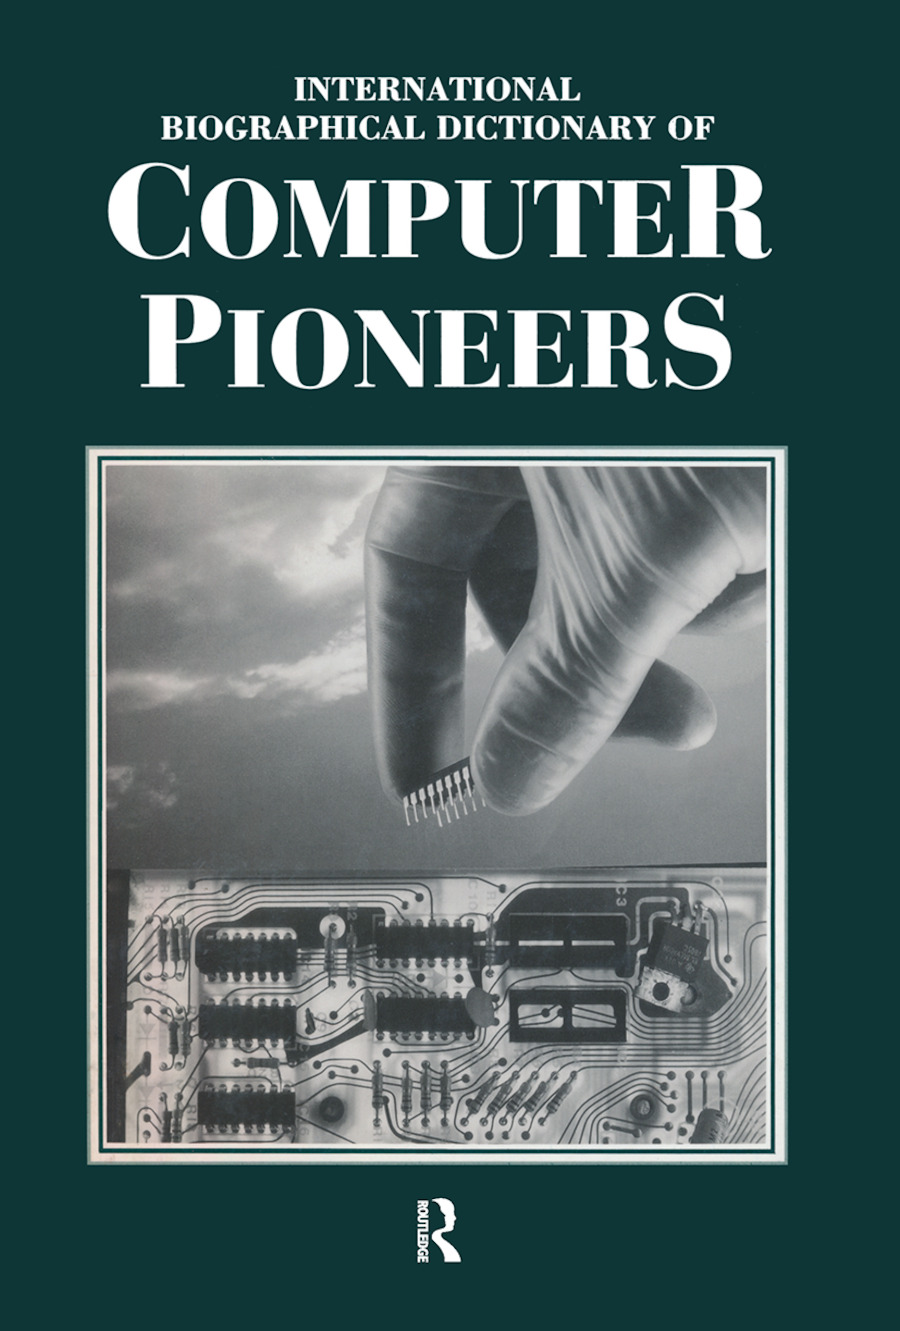 International Biographical Dictionary of Computer Pioneers: 1st Edition (Hardback) book cover